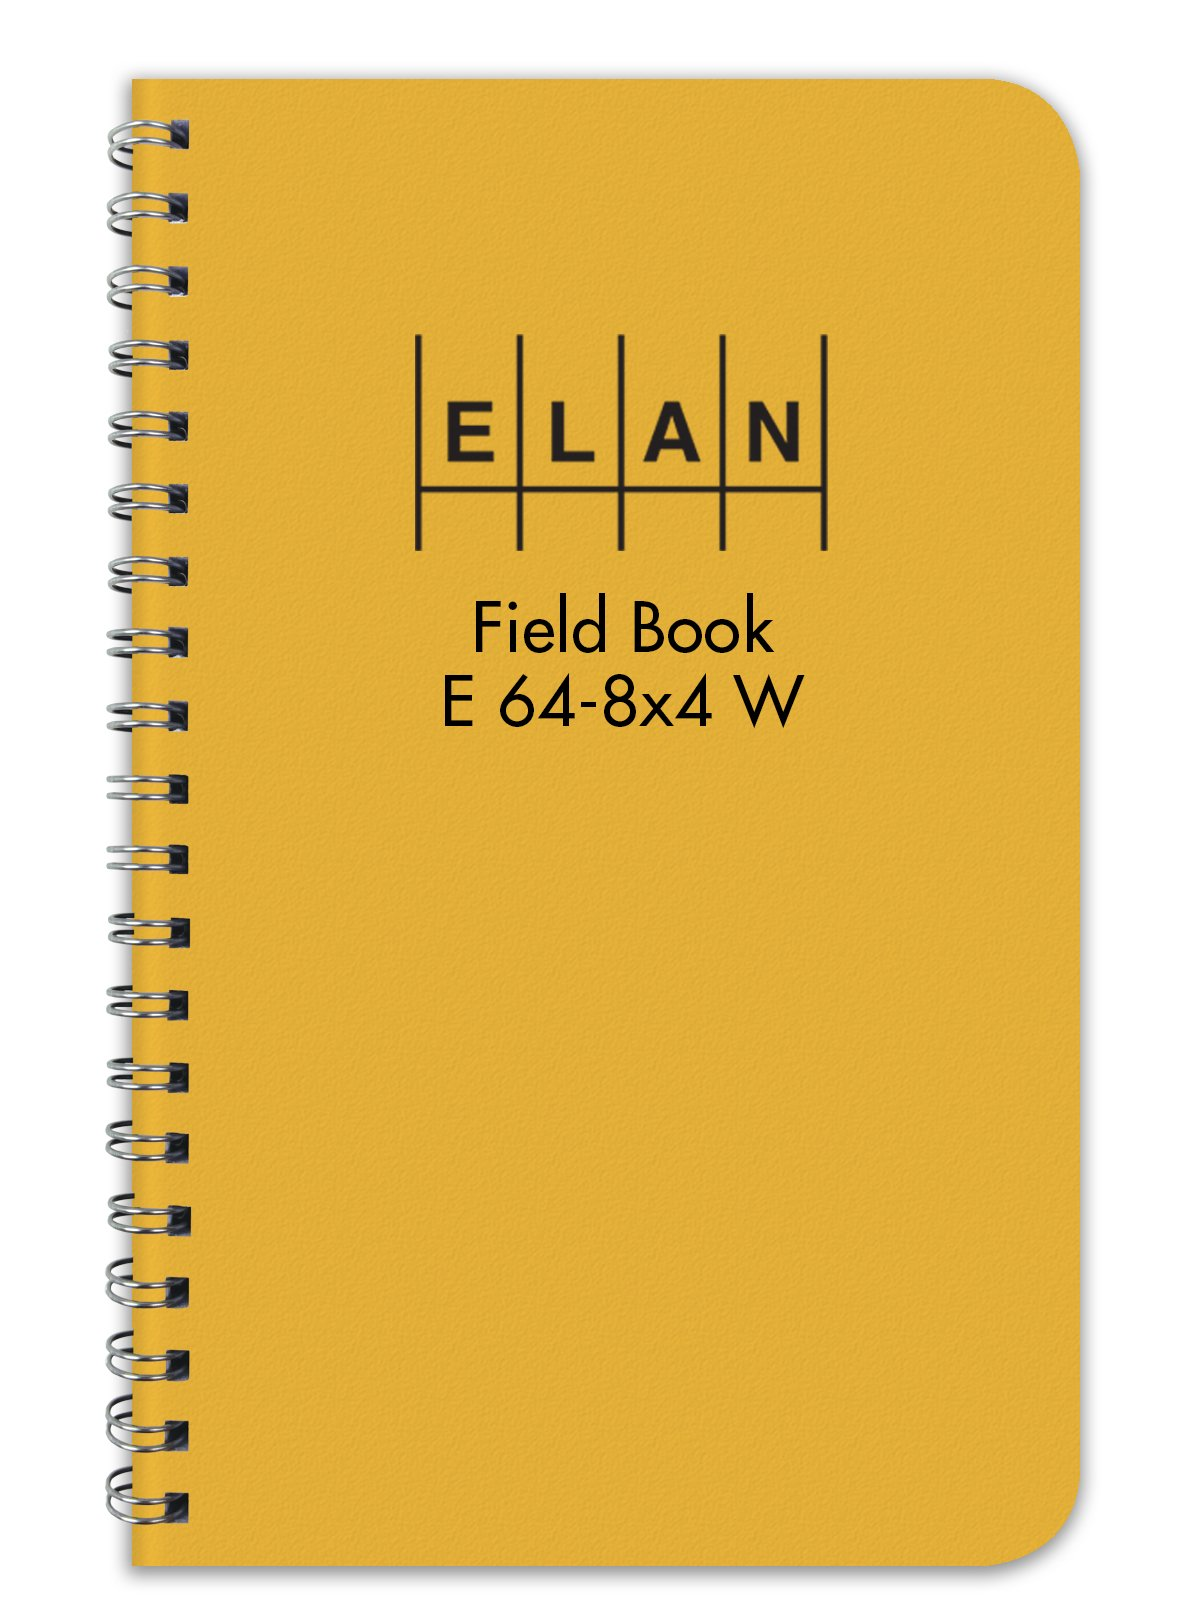 Elan Publishing Company E64-8x4W Wire-O Field Surveying Book 4 ⅞ x 7 ¼ Yellow Stiff Cover (Pack of 12) by Elan Publishing Company